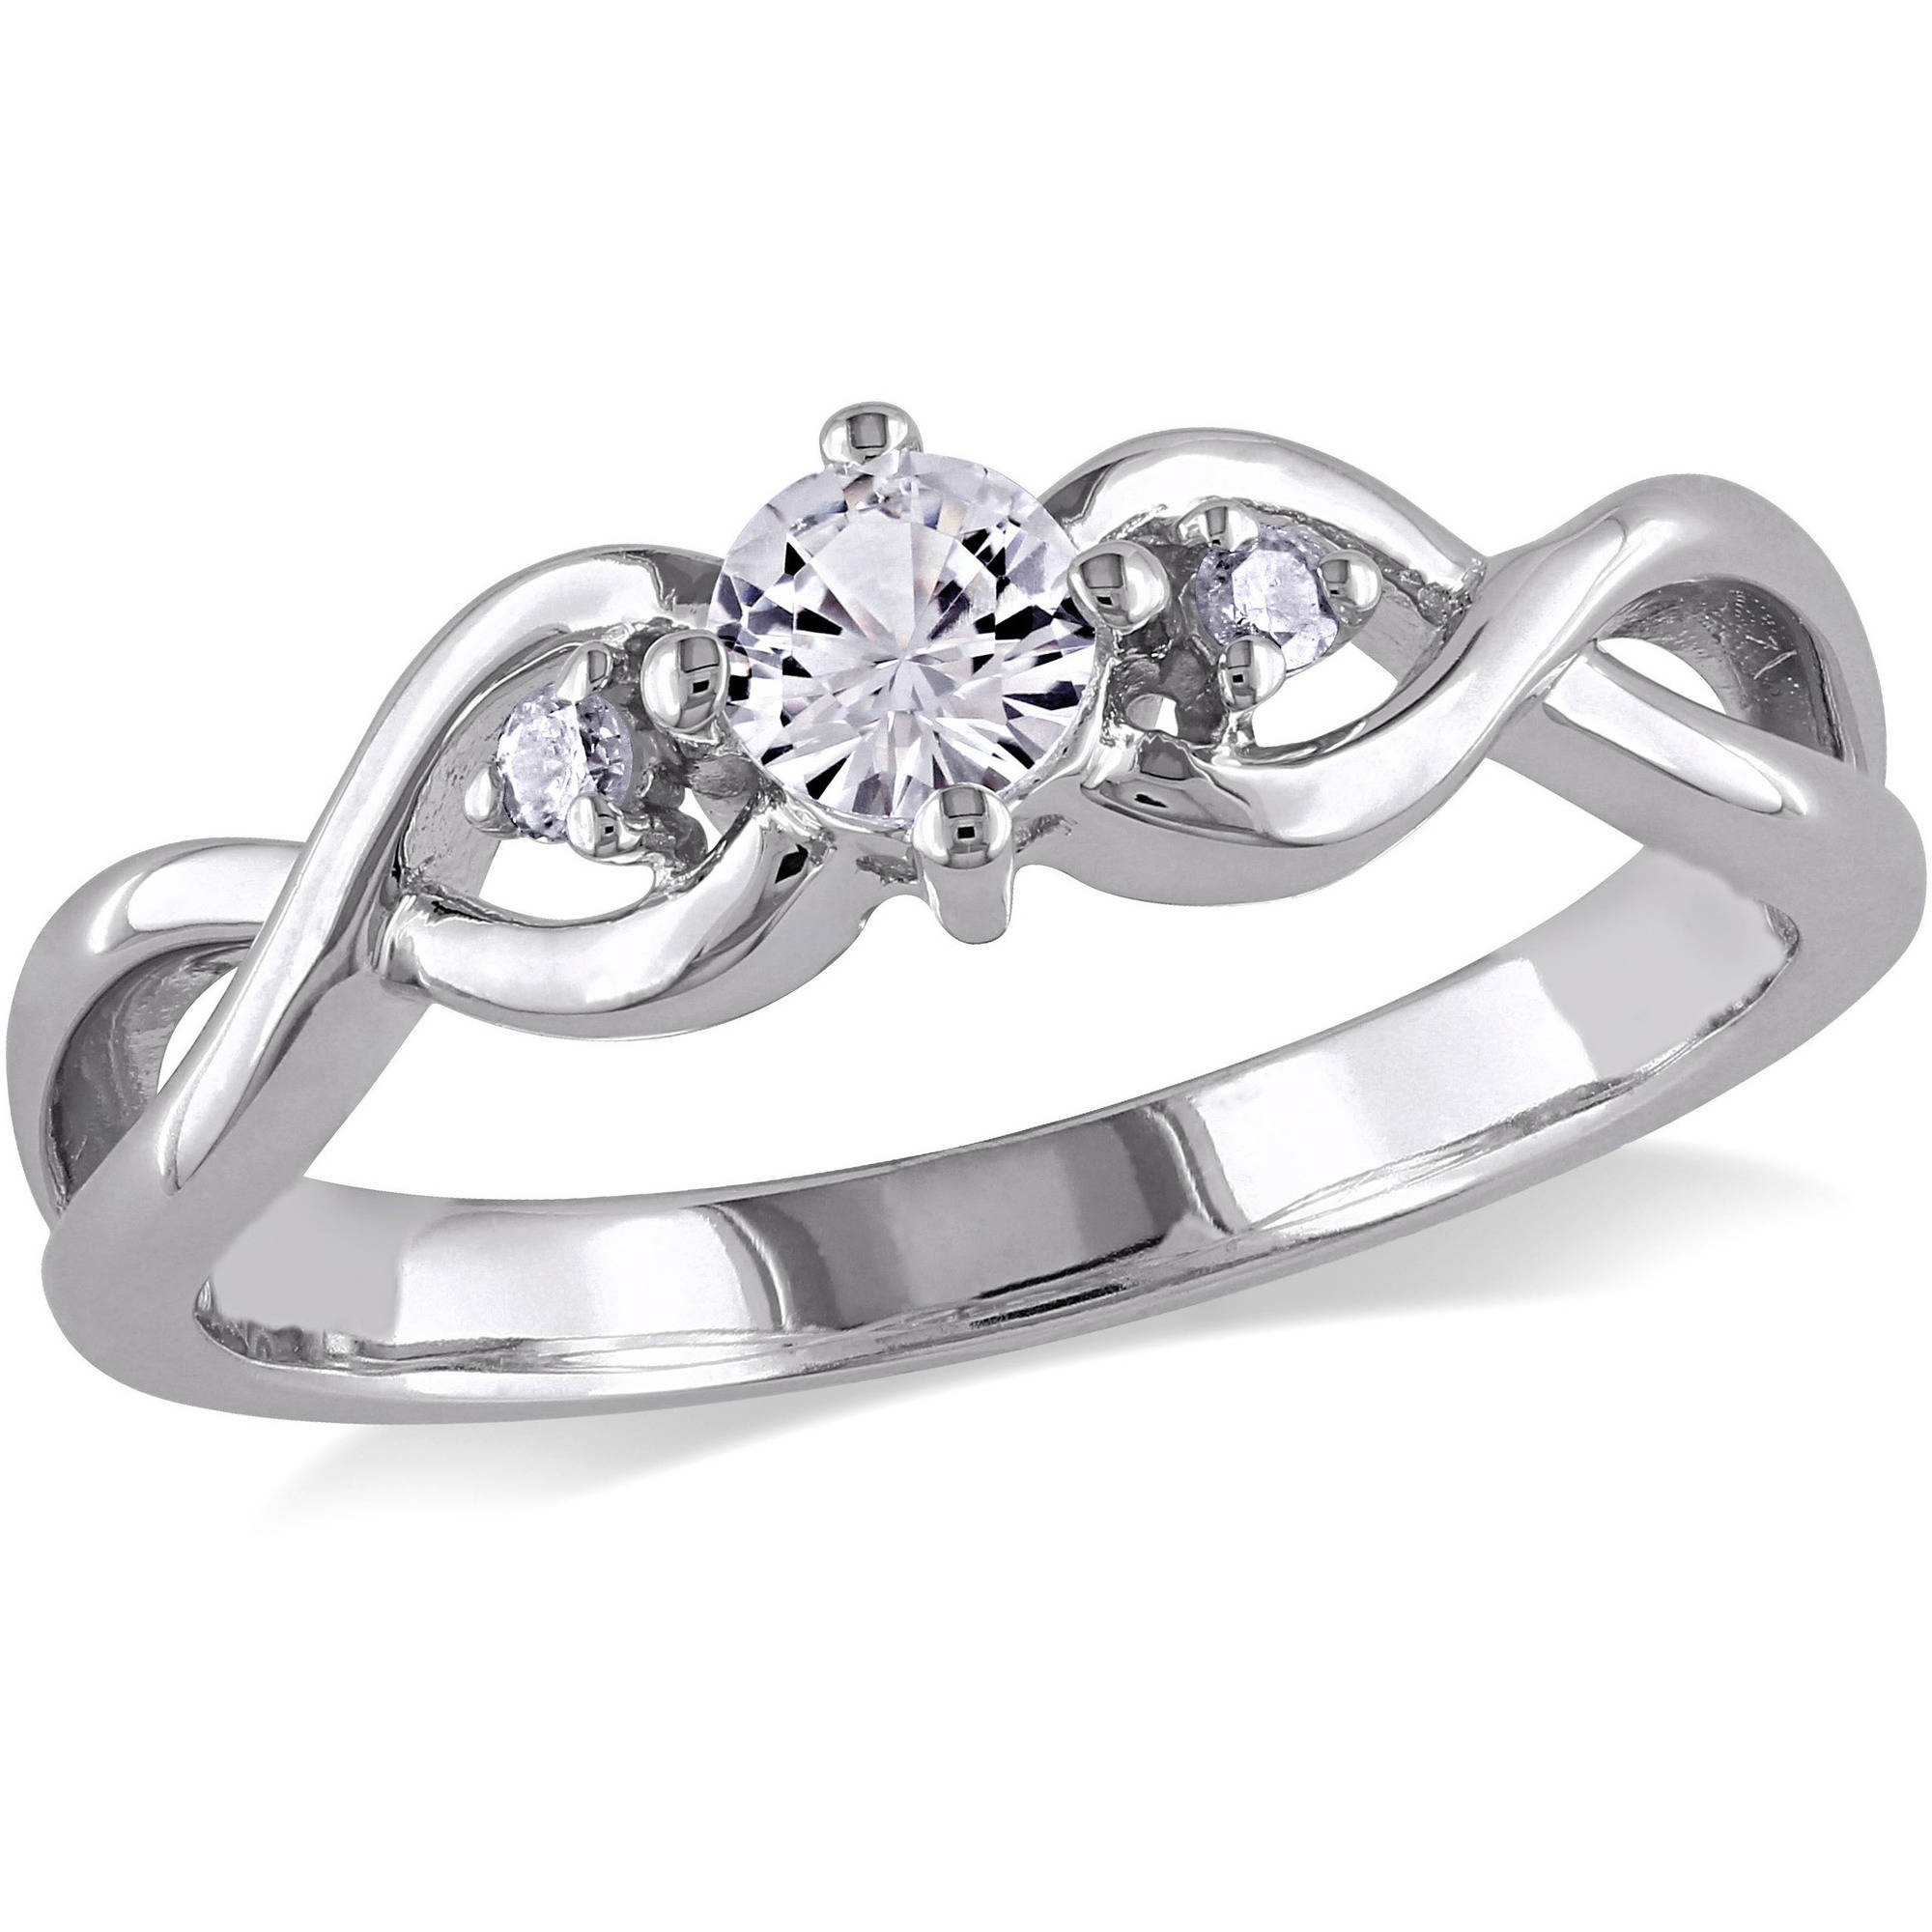 Miabella 1/3 Carat T.G.W. Created White Sapphire and Diamond Accent Sterling Silver Cross-Over Promise Ring